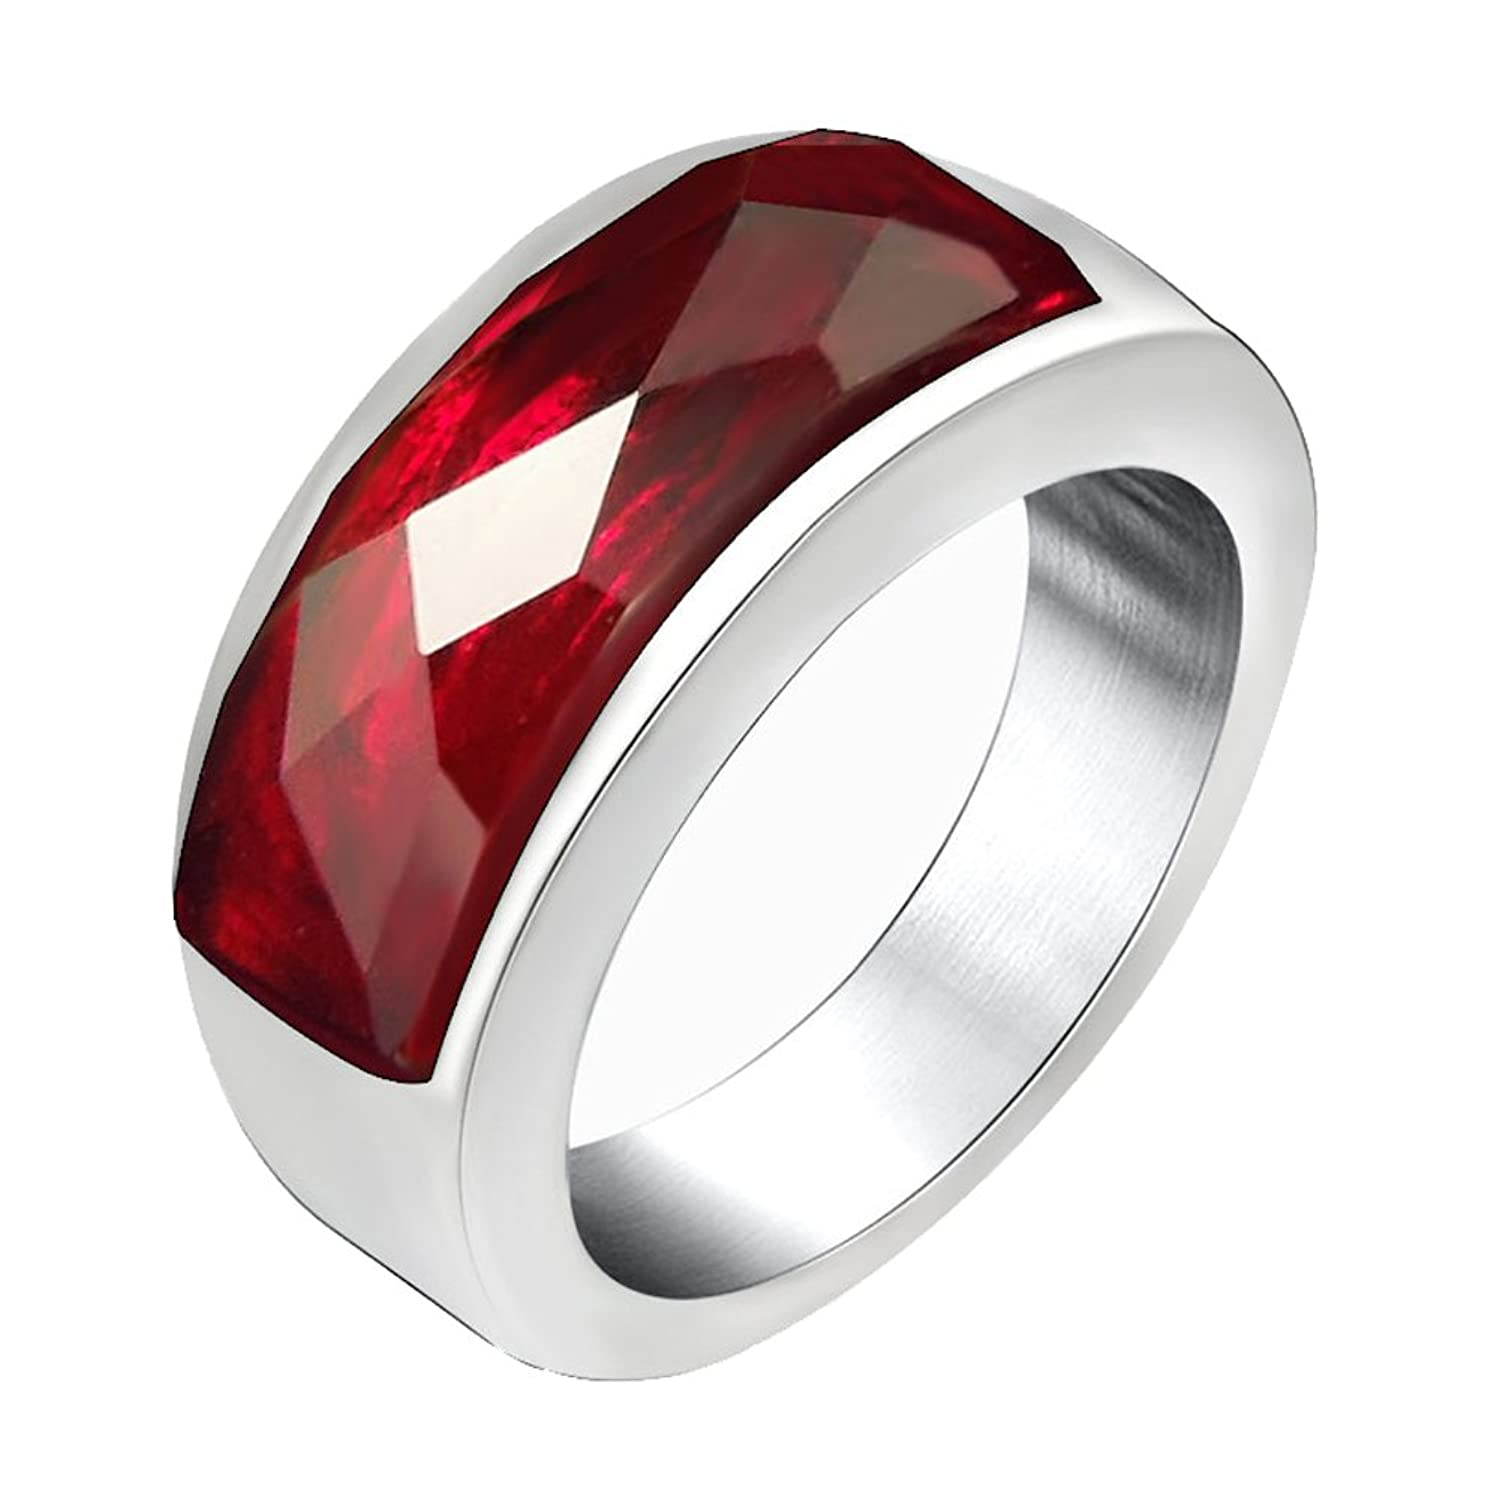 FANSING Jewelry Mens Womens Stainless Steel Rings with Red Stone